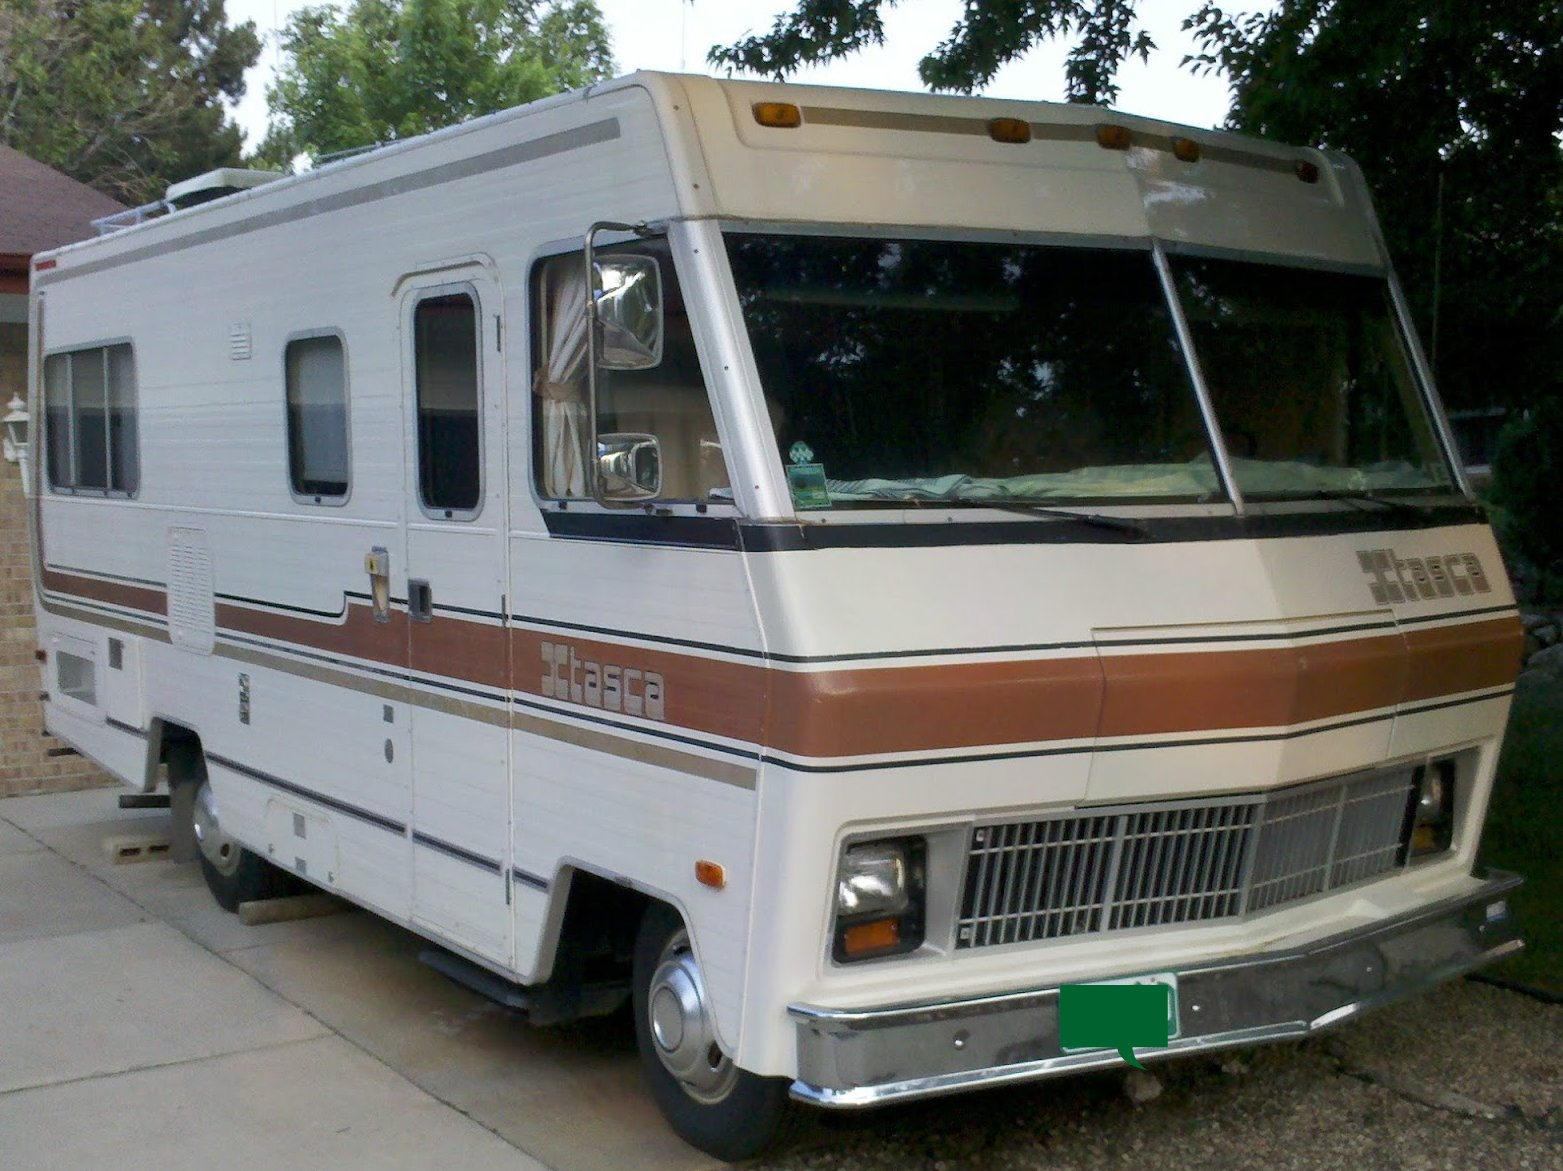 The Itasca Project: 1982 Itasca Sundowner